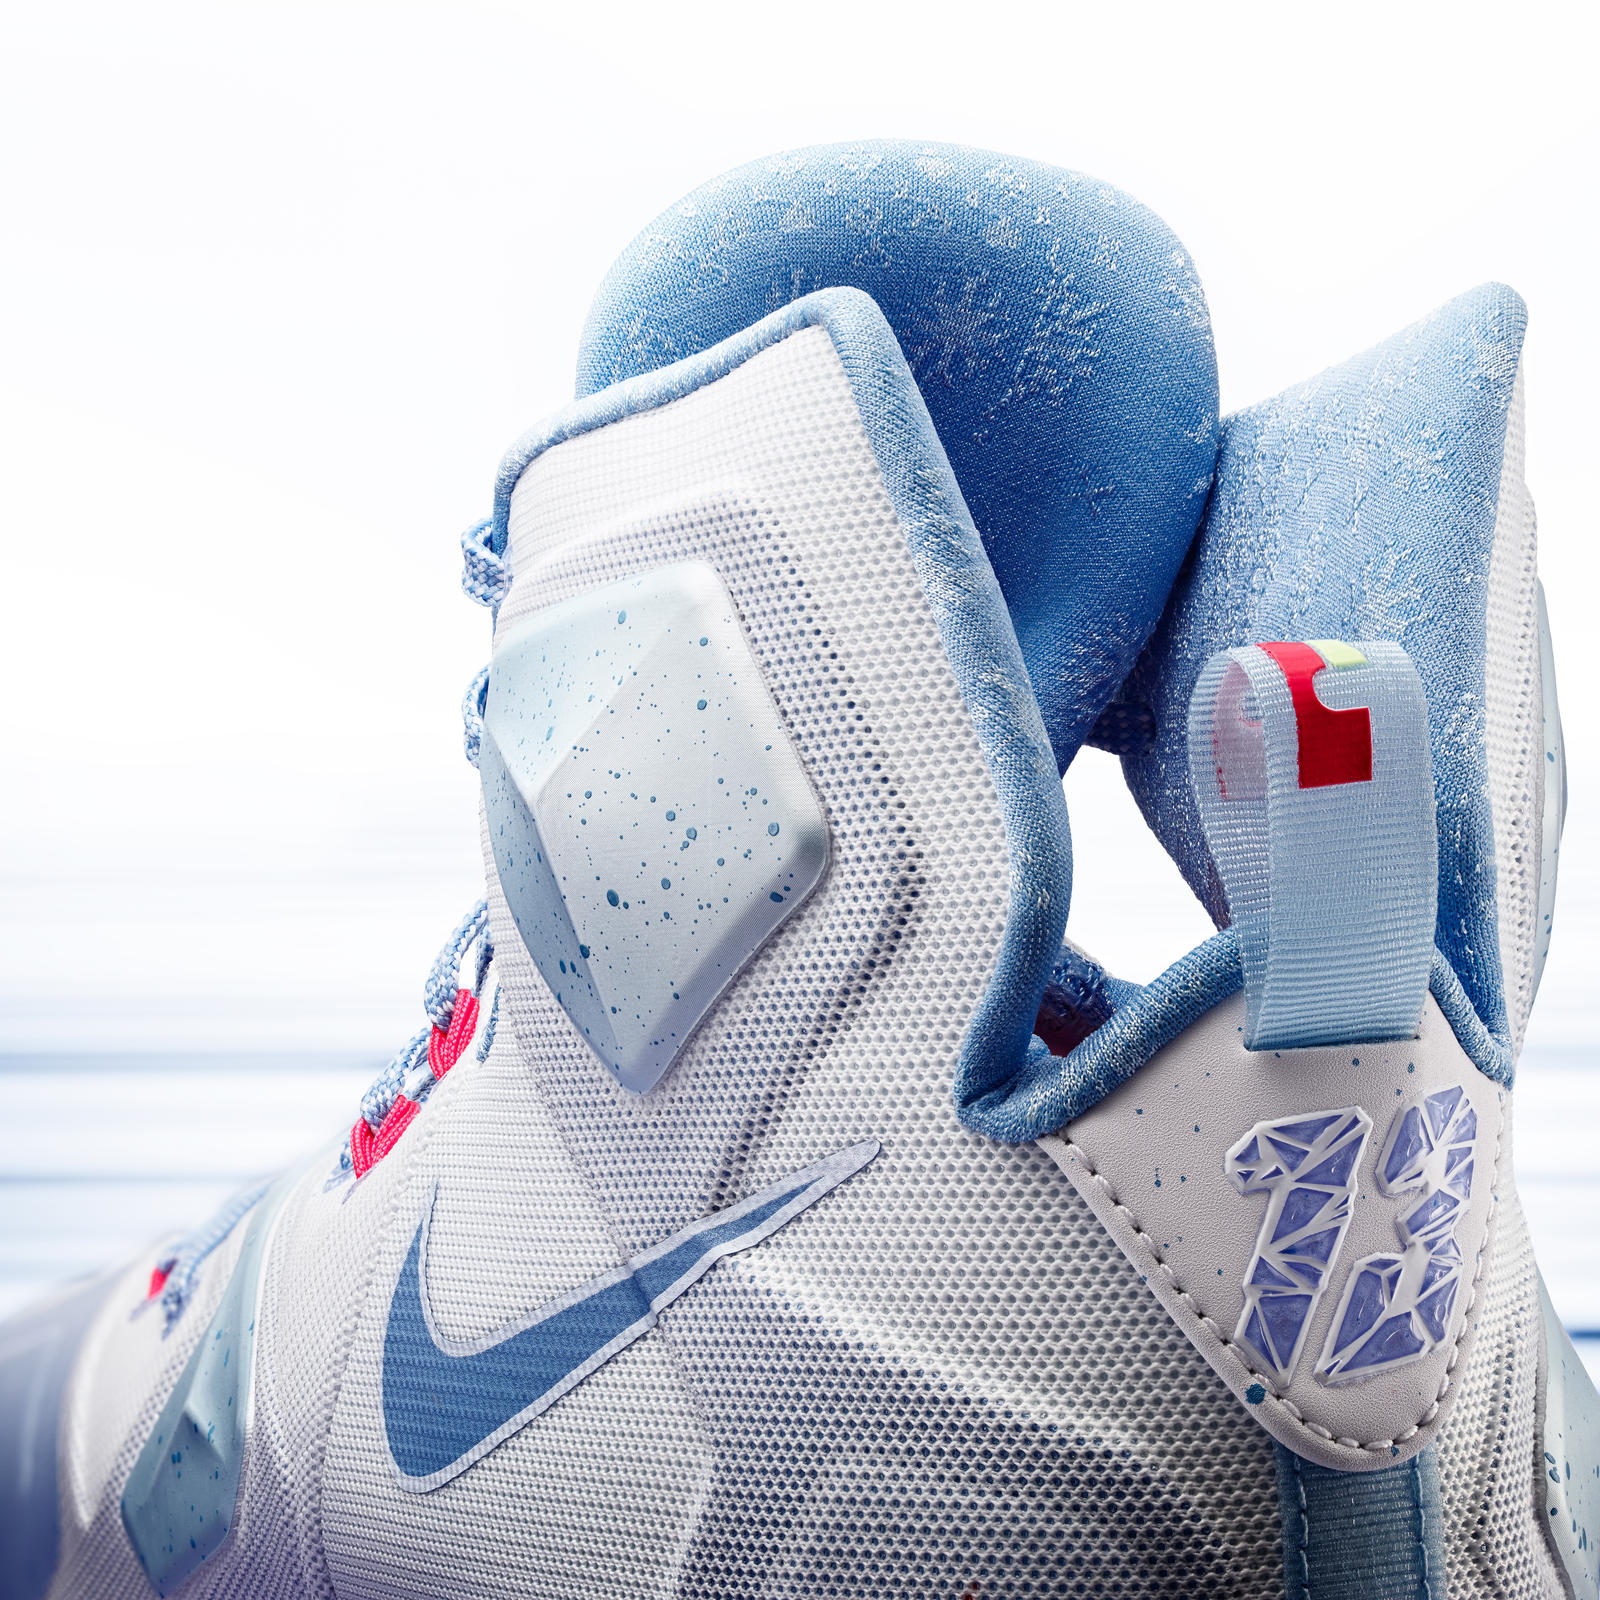 15 600 nike holiday lebron 13 detail a 01 square 1600